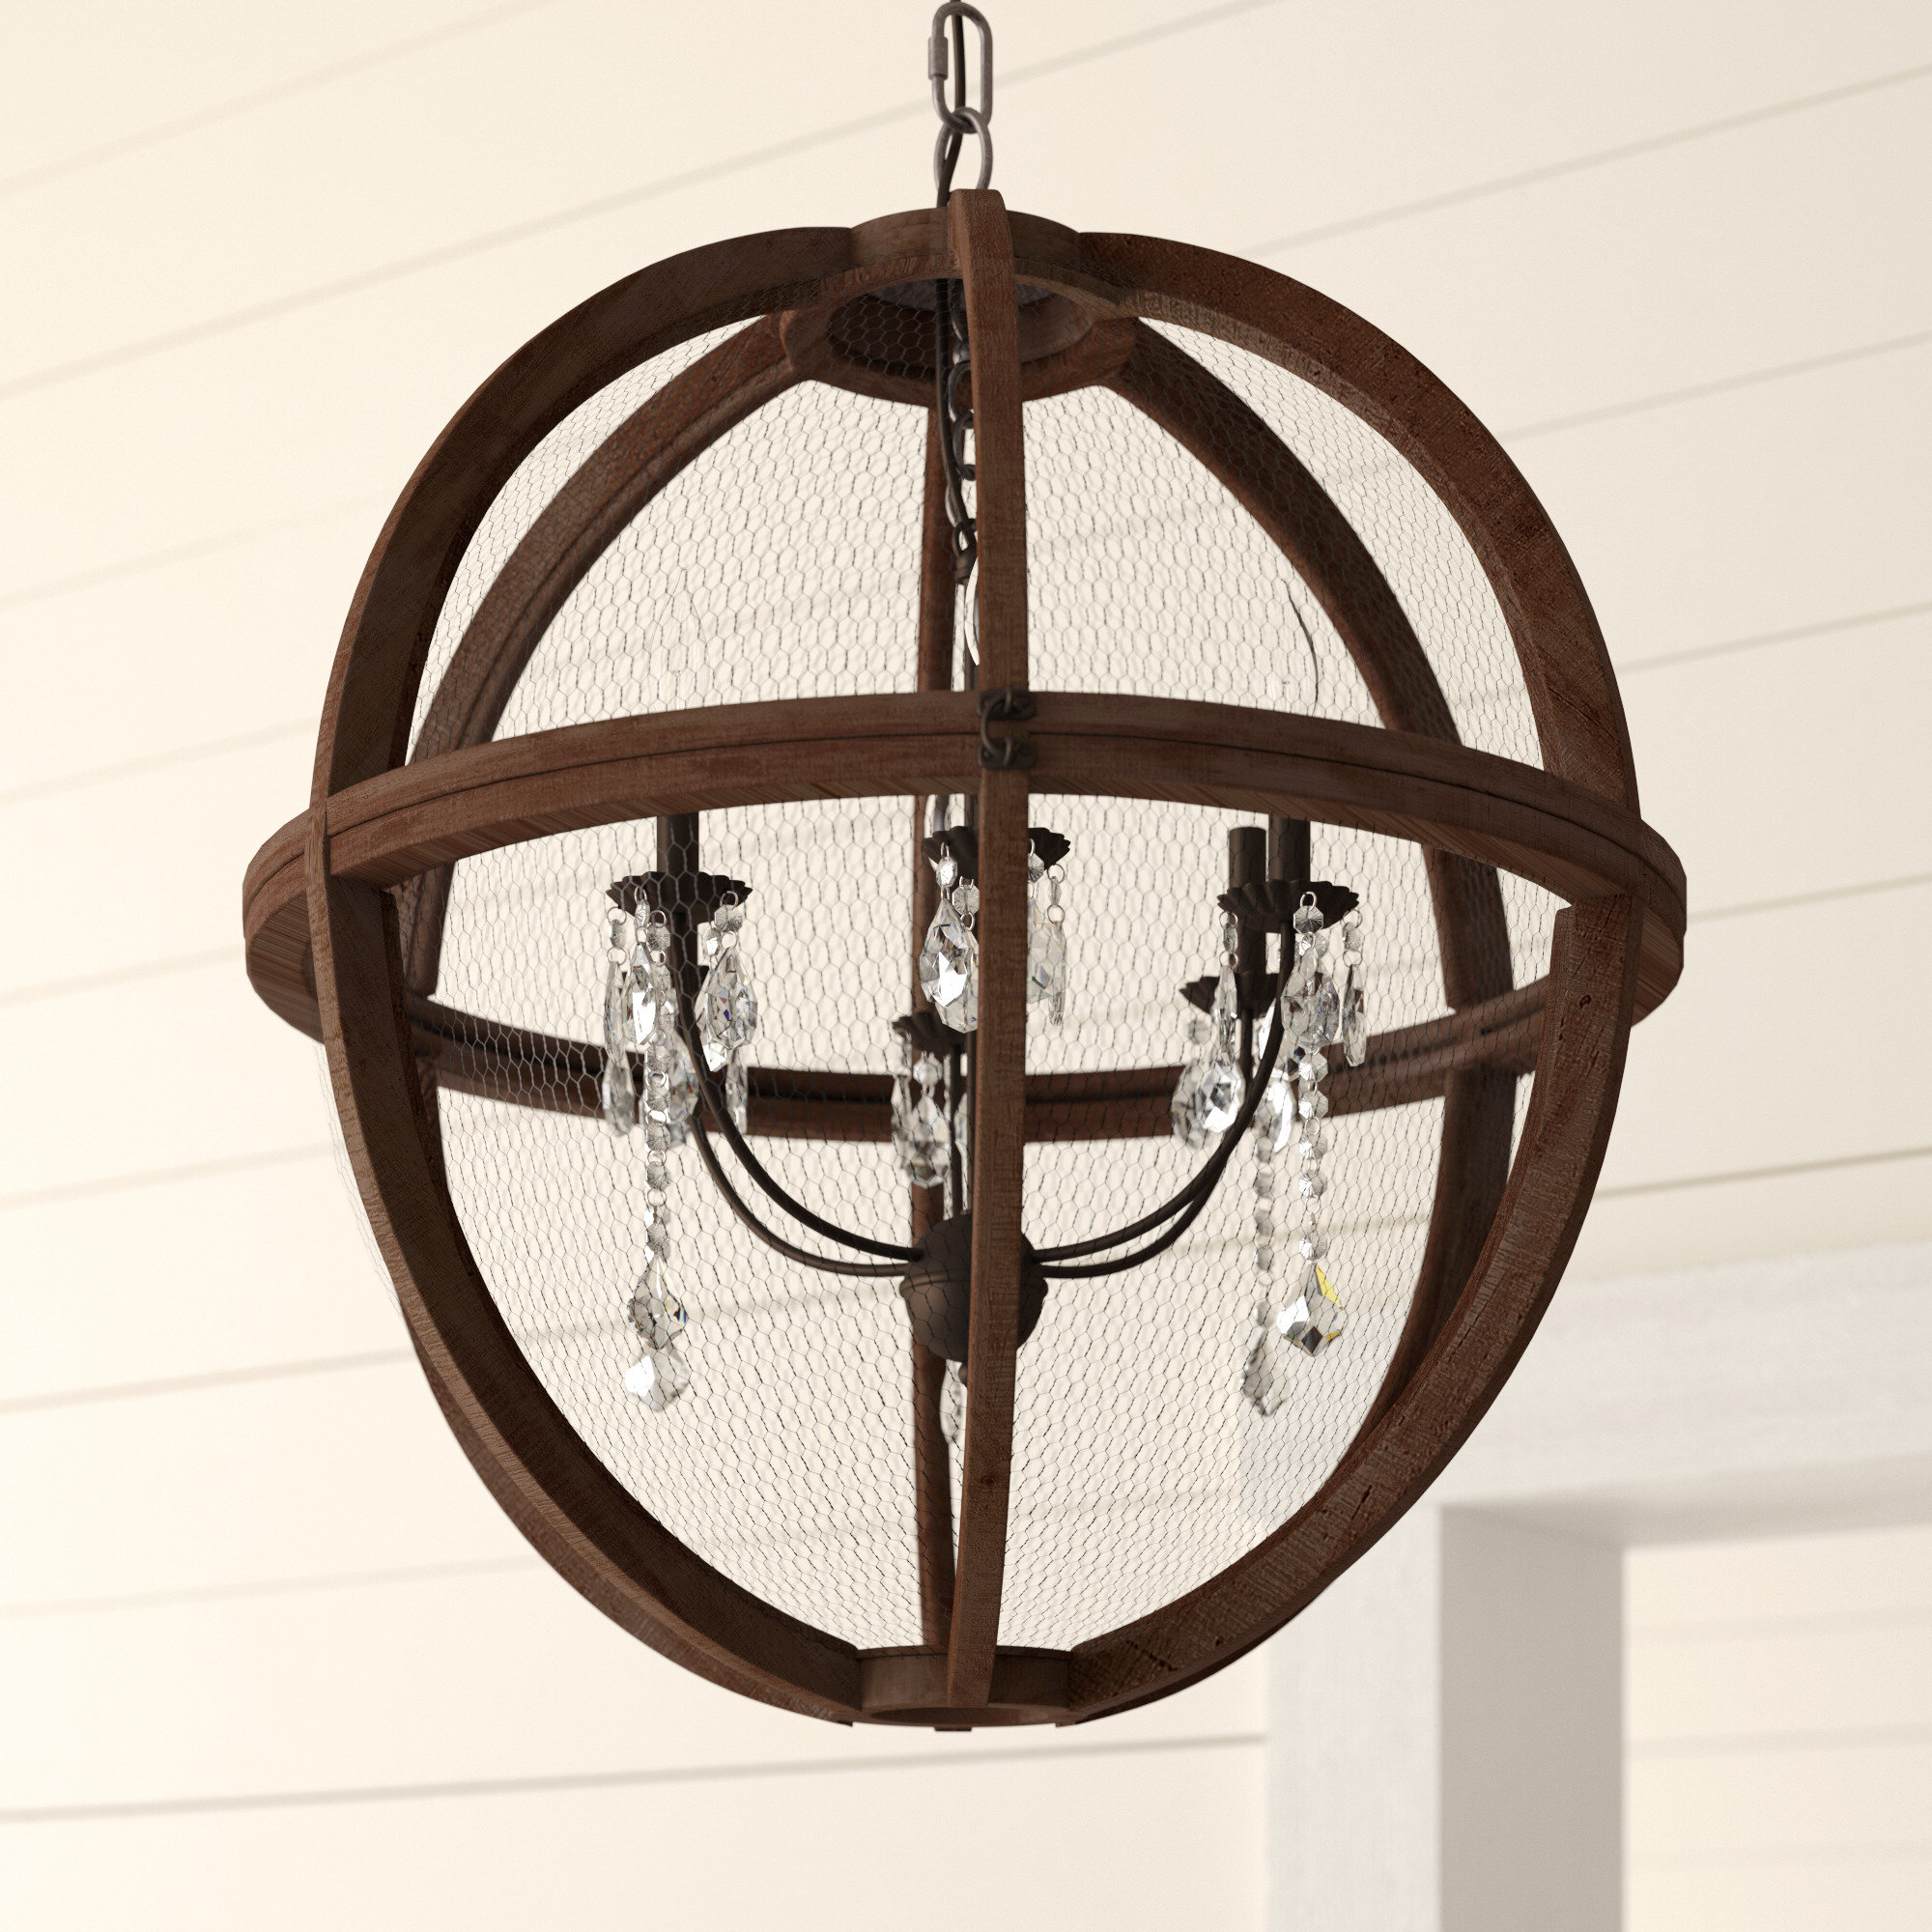 Hendry 4-Light Globe Chandeliers pertaining to Latest Farmhouse & Rustic Globe Chandeliers